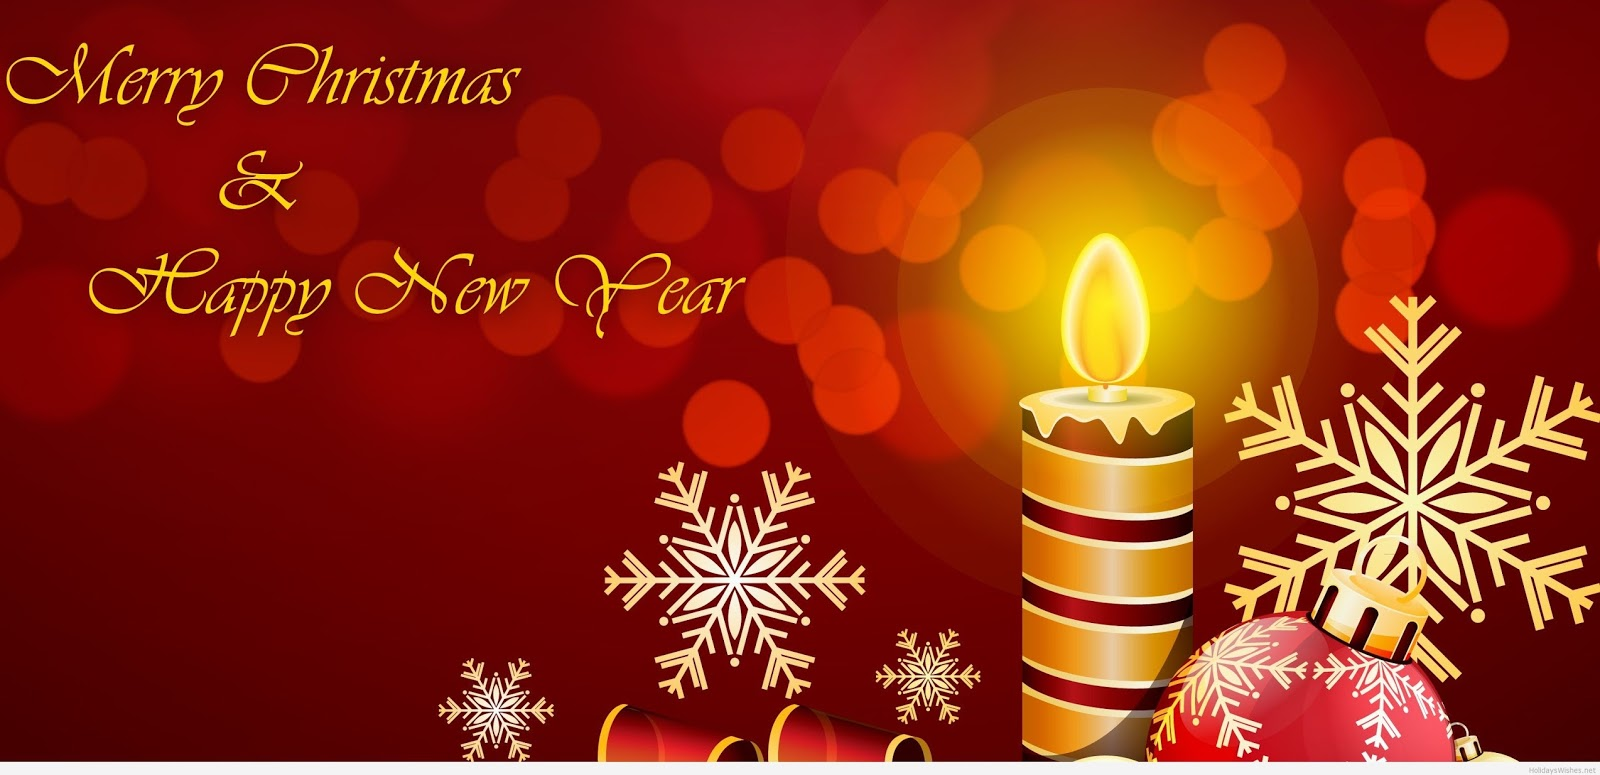 Diwali latest imeges merry christmas latest images with wishes 2017 happy christmas greeting cards free download 2017 m4hsunfo